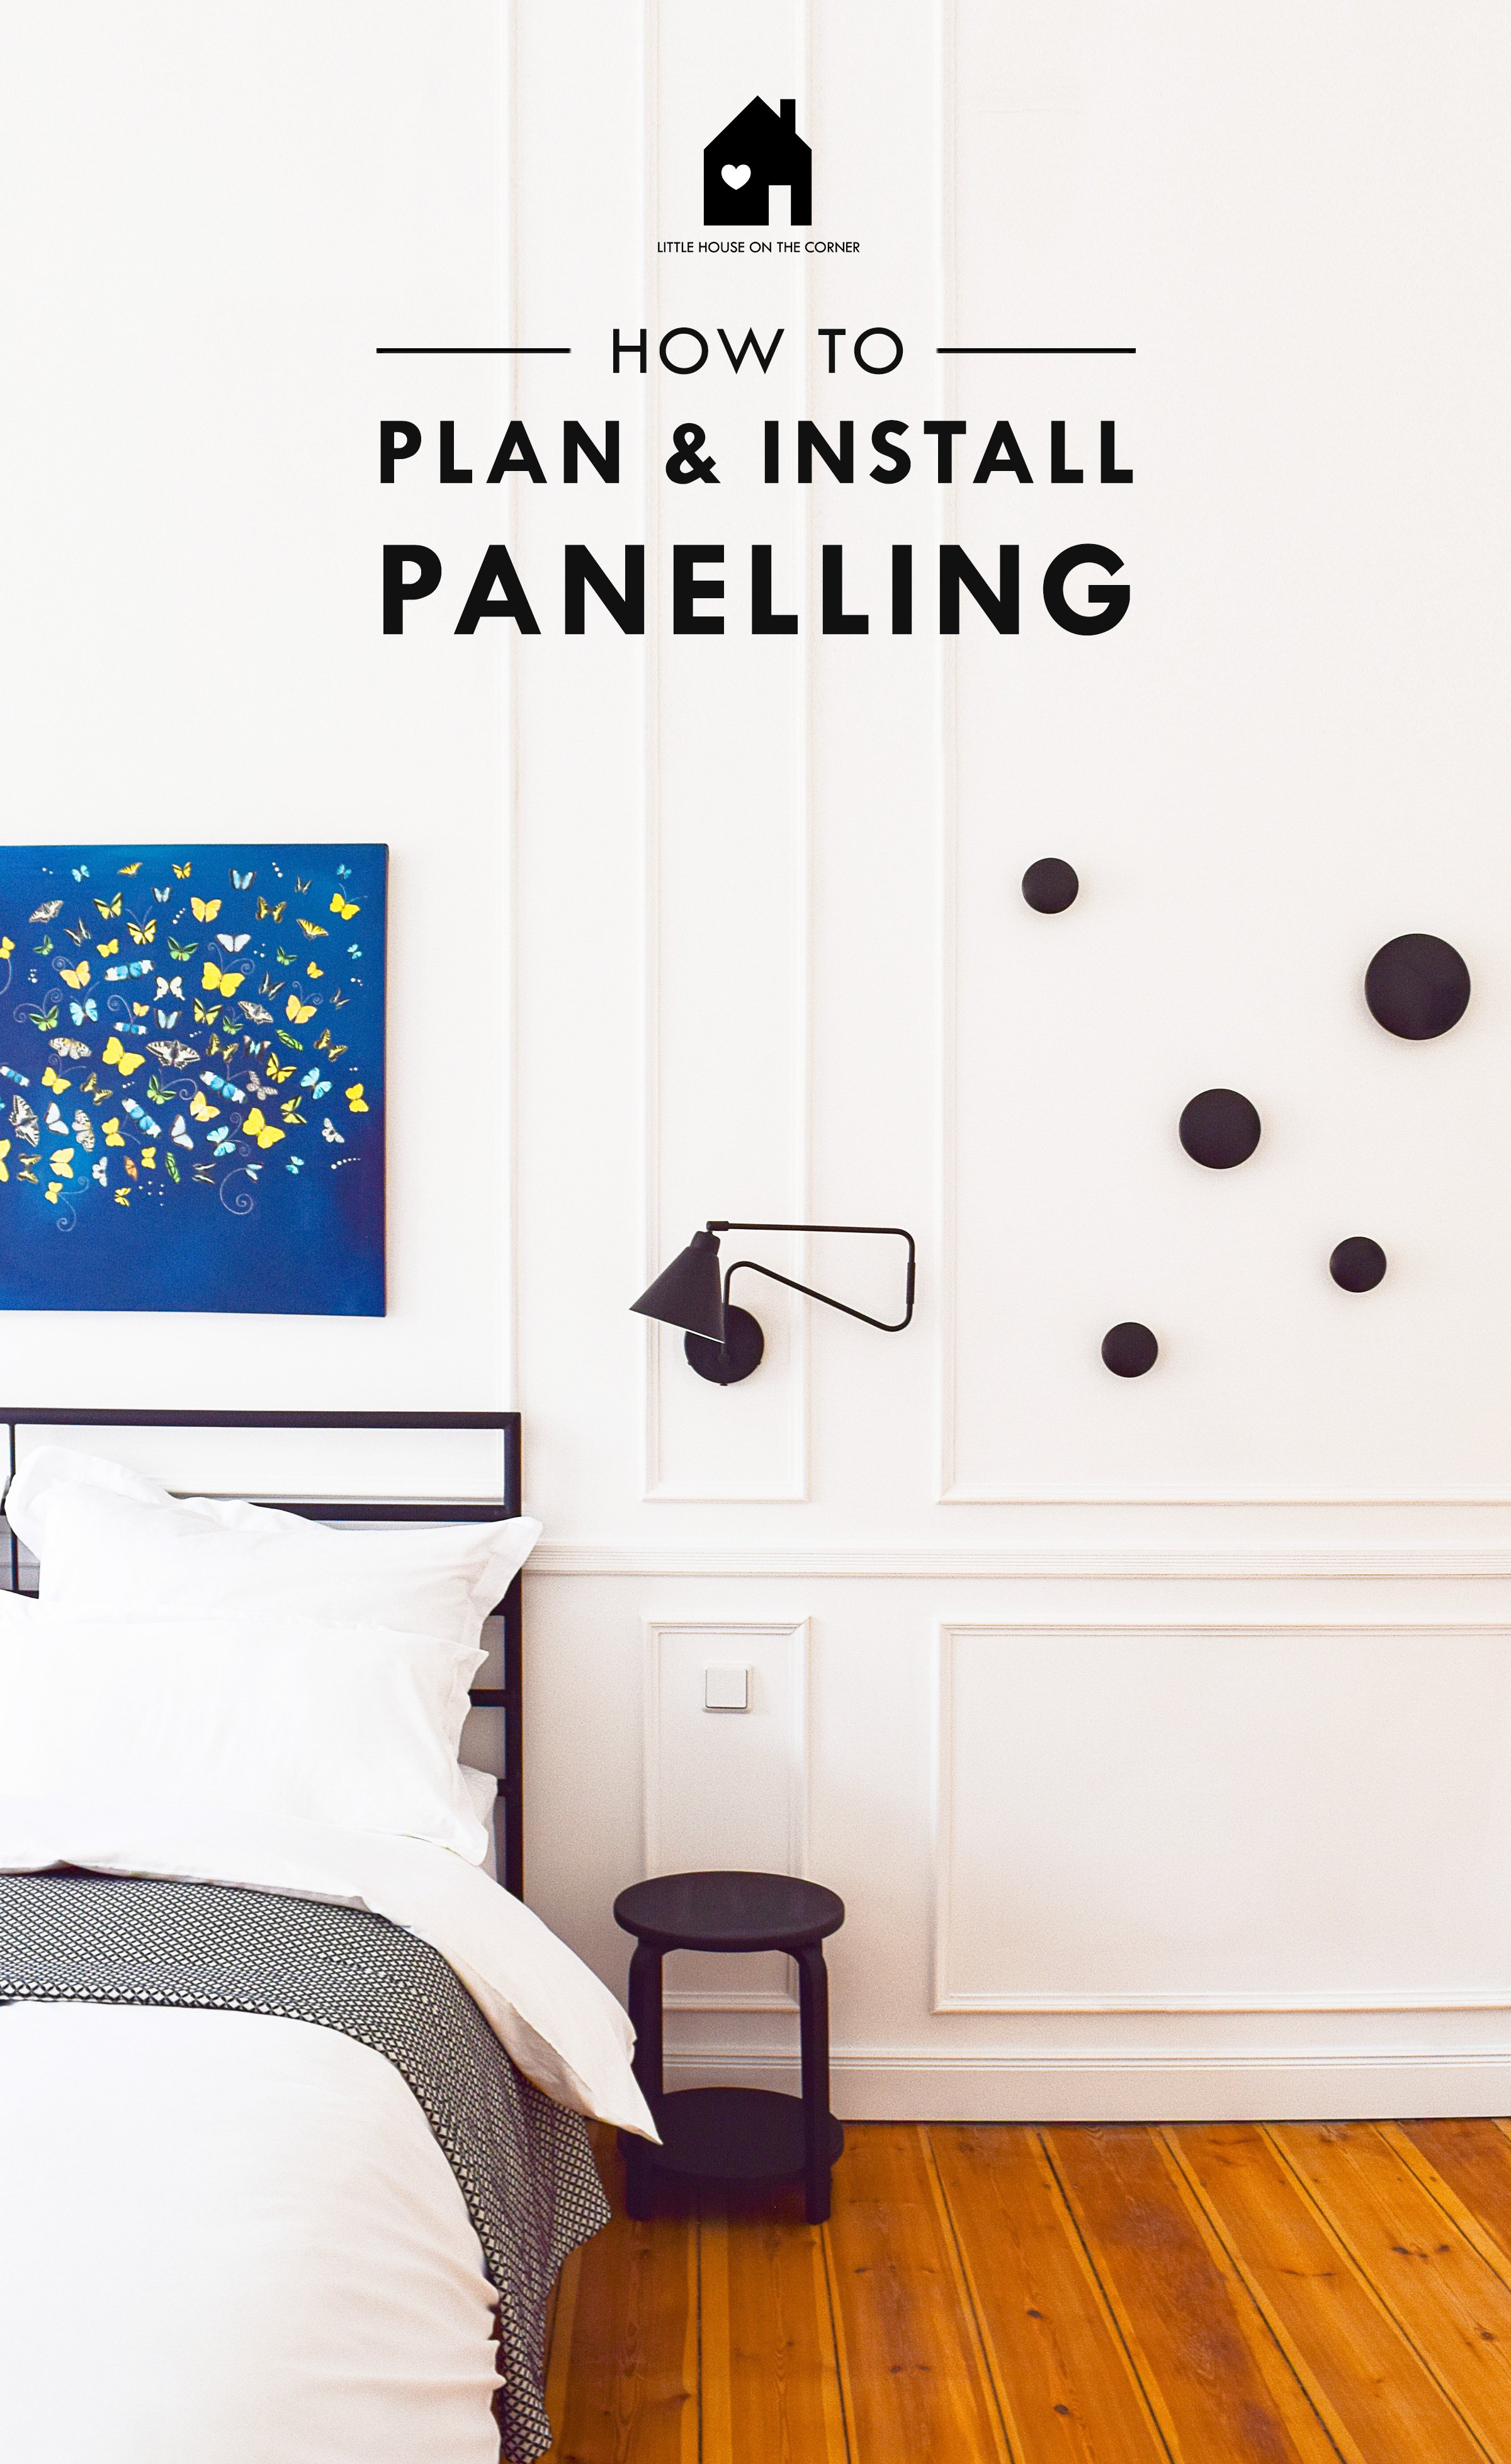 How To Plan And Install Panelling | Ultimate DIY Guide On How To Install Panelling Yourself | Little House On The Corner